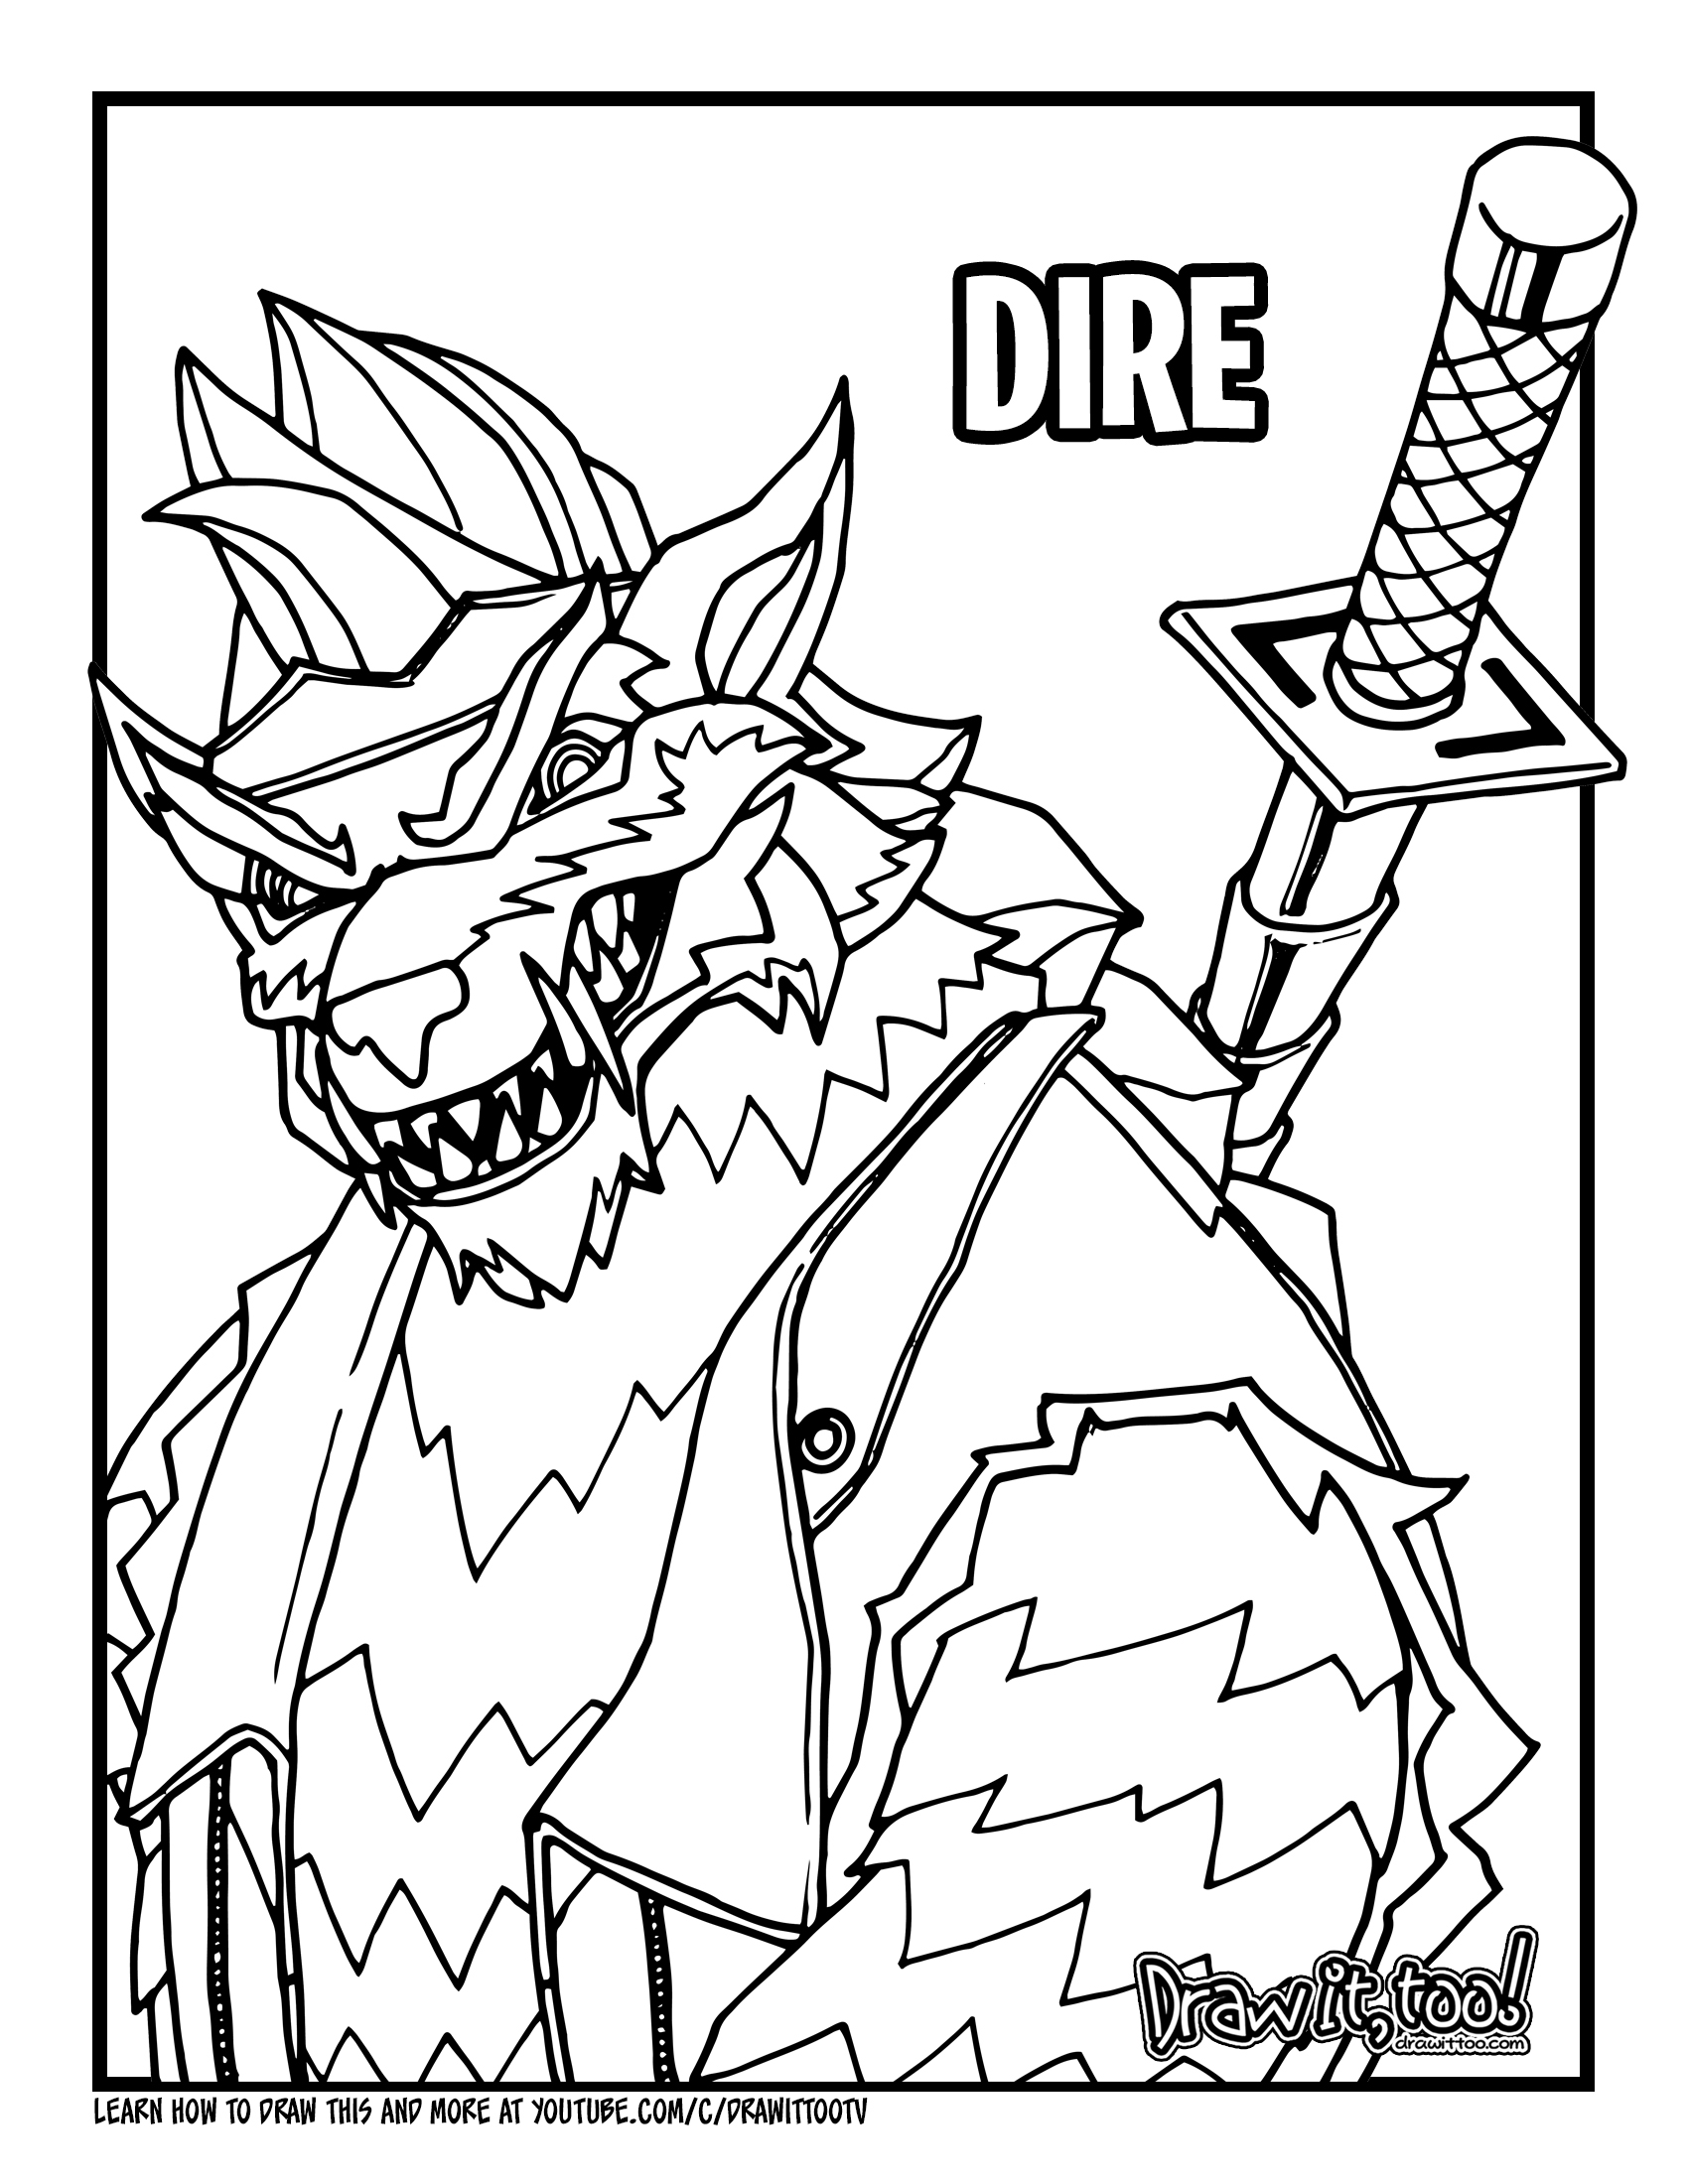 Fortnite Dire - Free Coloring Pages